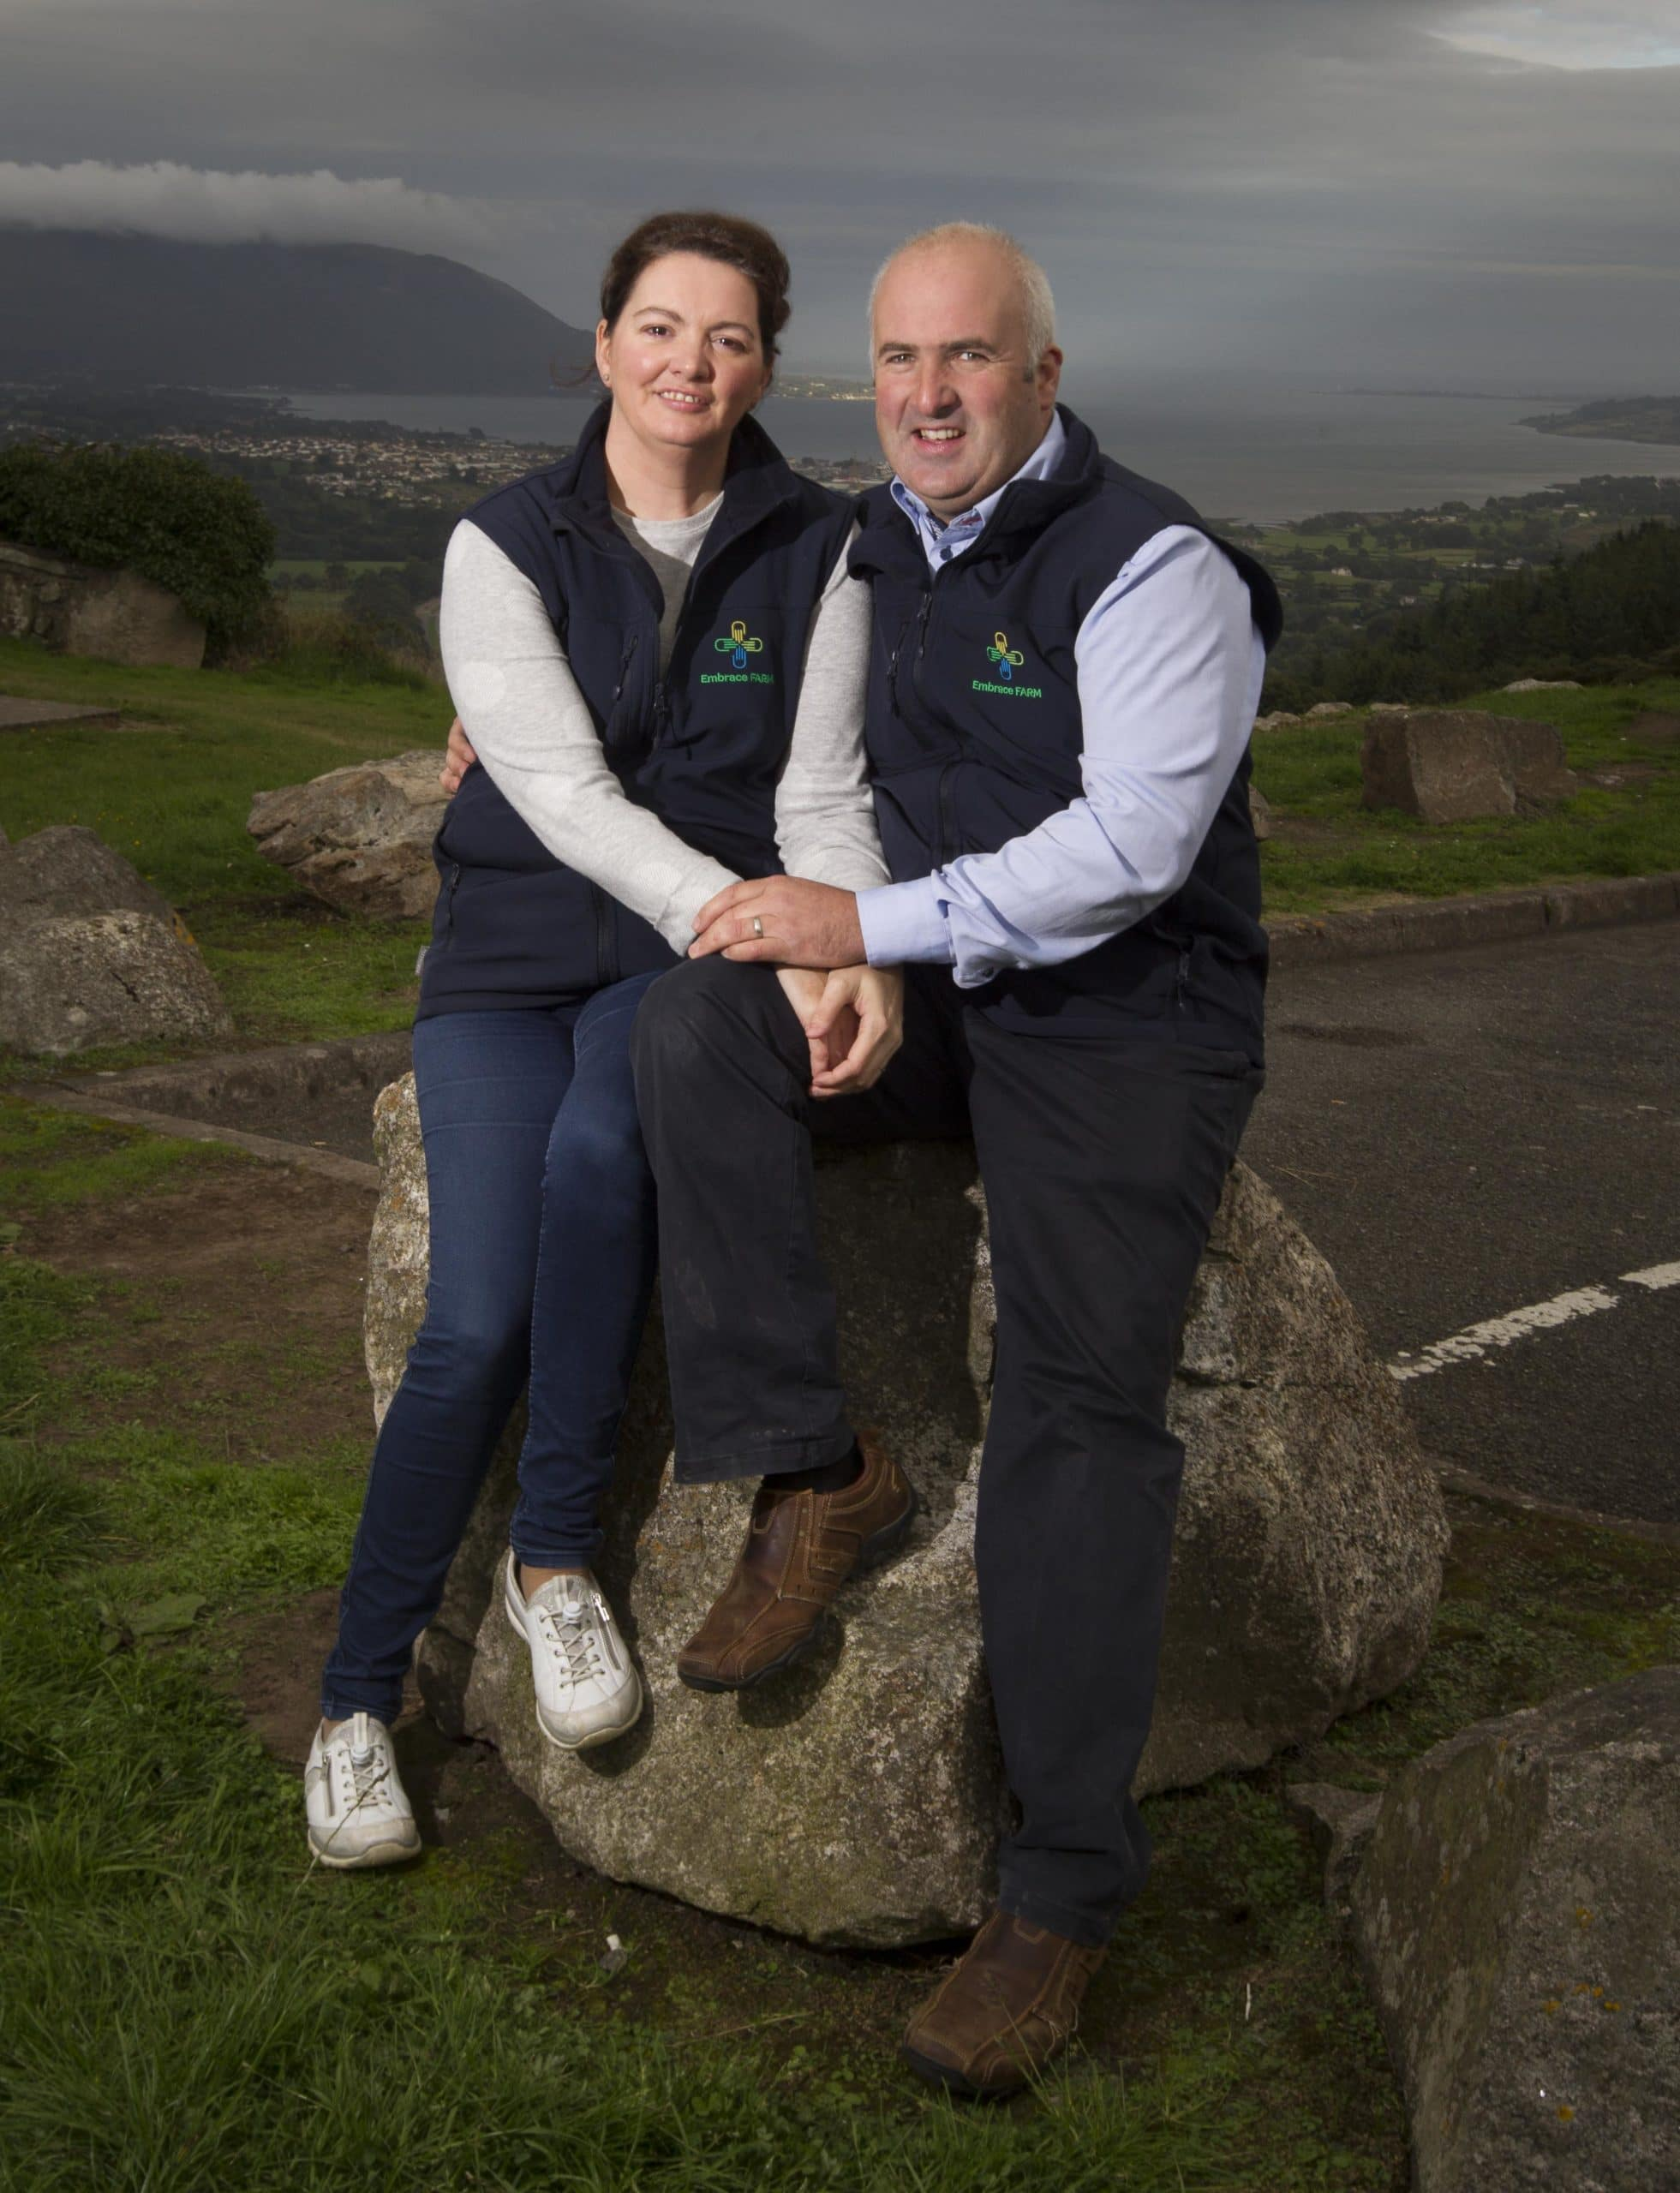 Embrace FARM first ever online Remembrance service to remember loved ones lost or injured in farm accidents